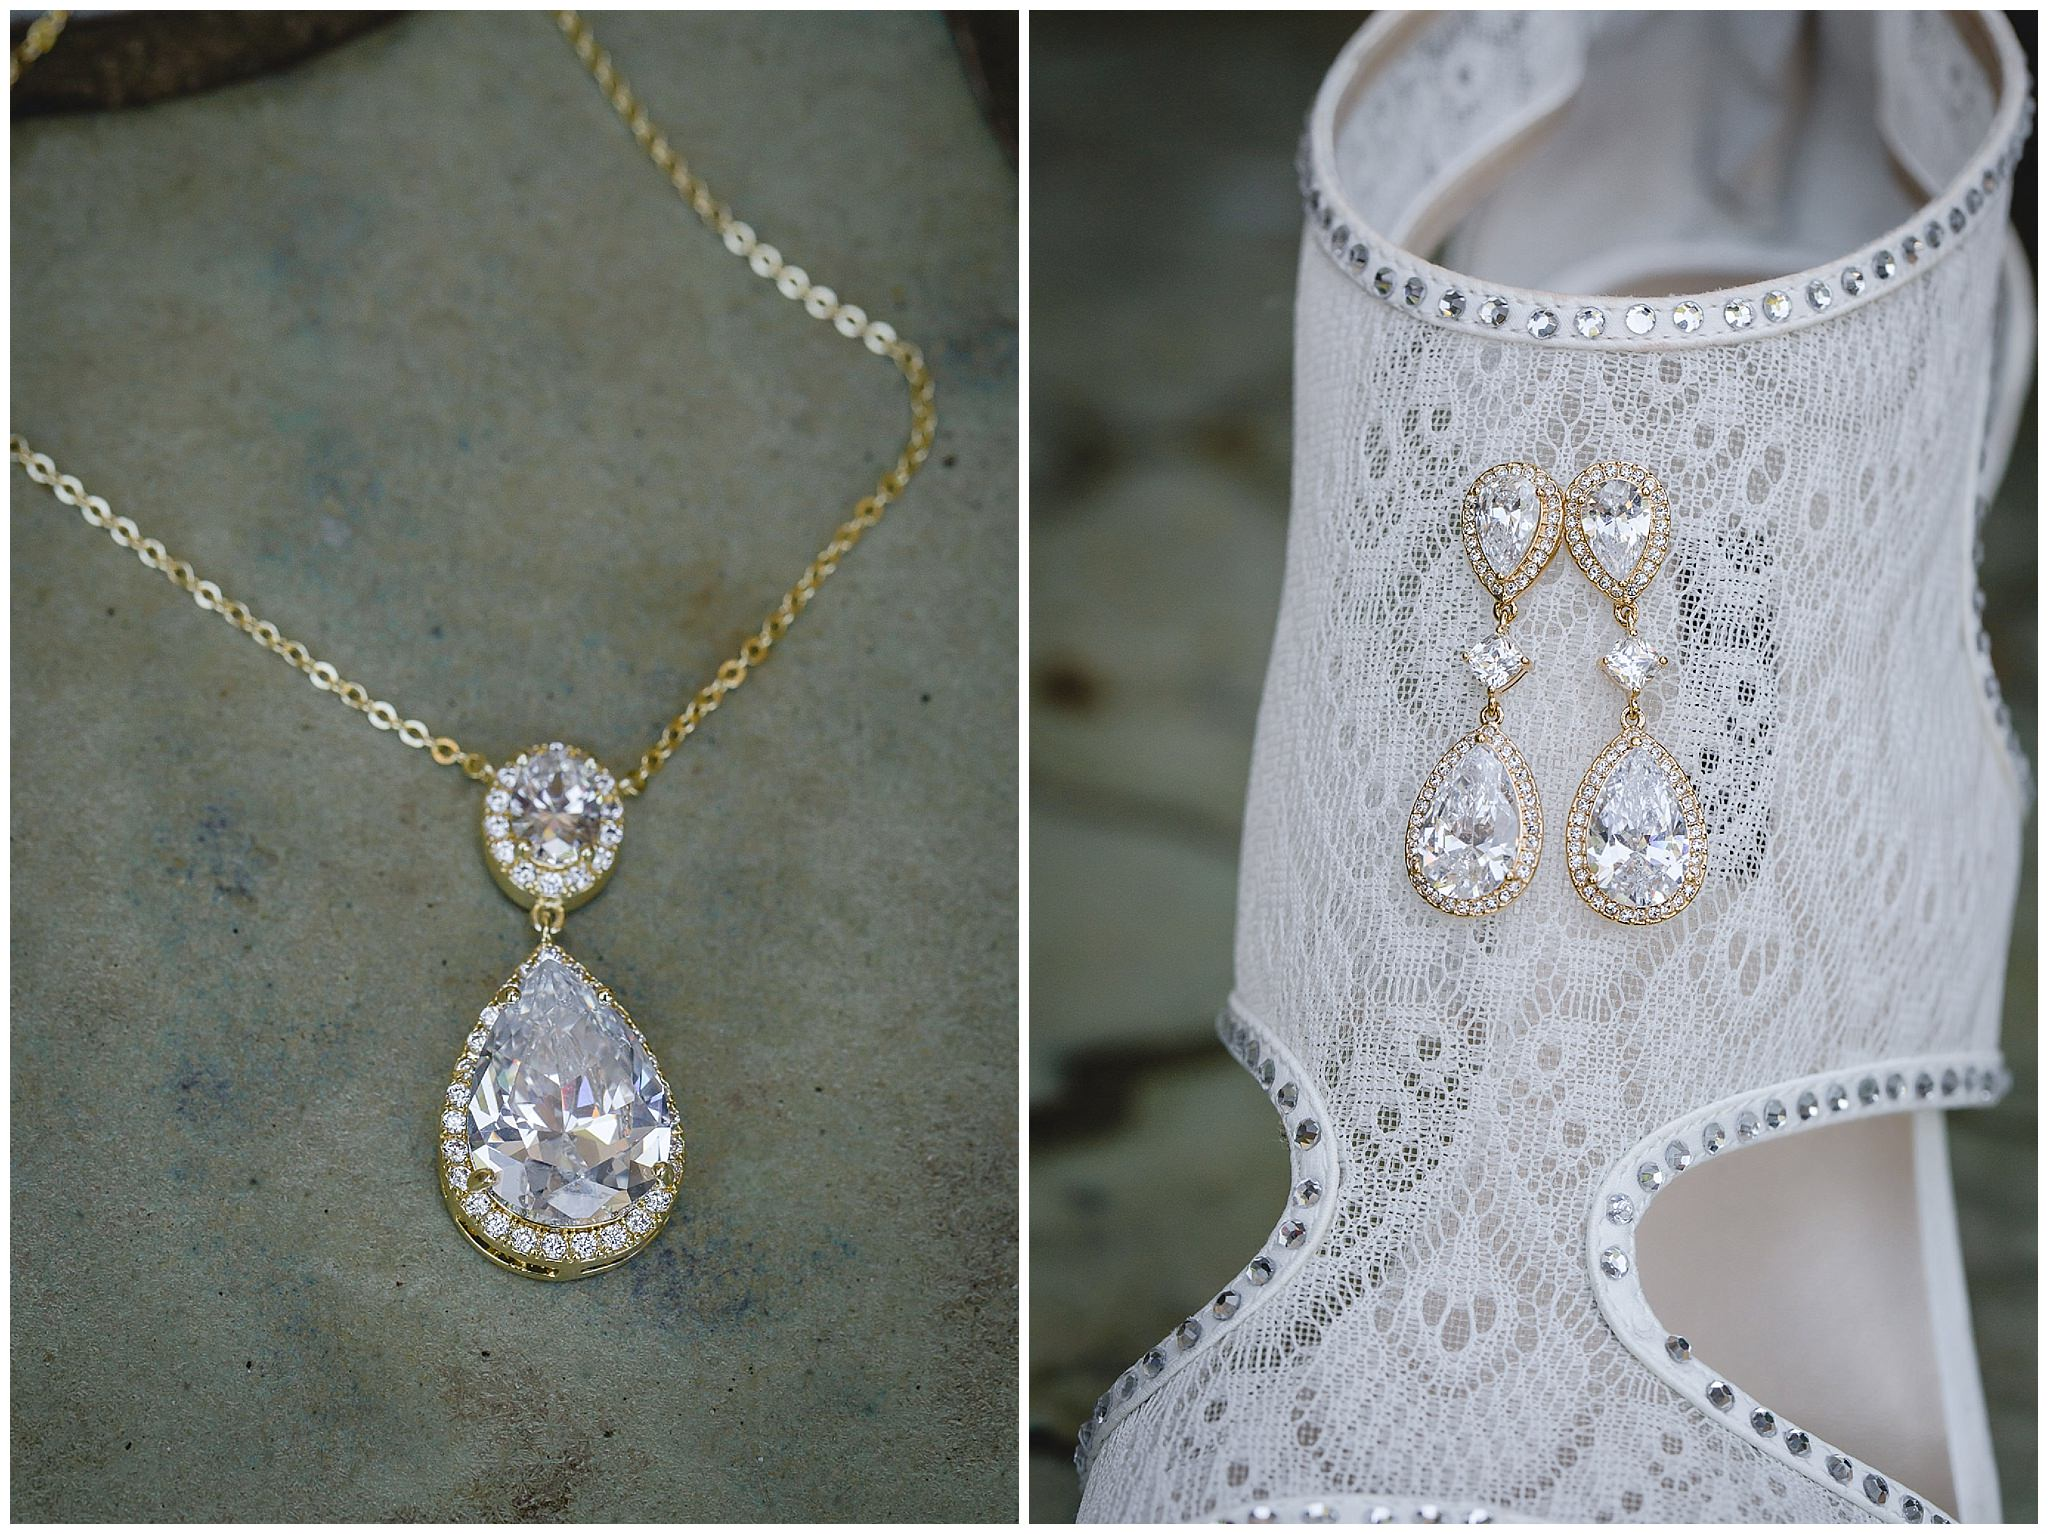 Bride's diamond necklace and earrings